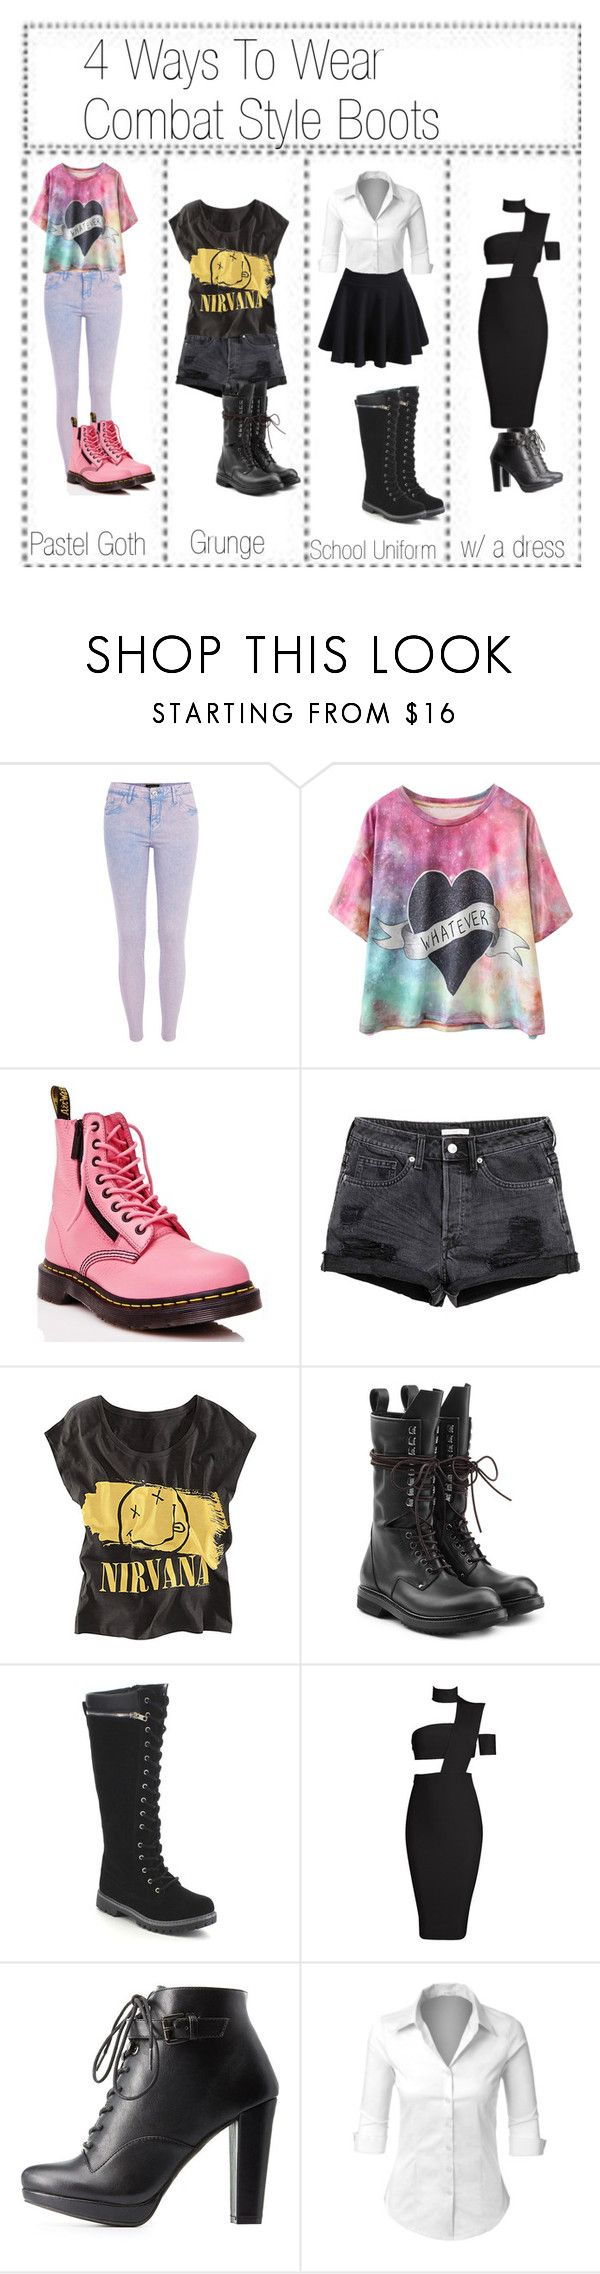 """""""4 Ways to wear Combat Style Boots"""" by xx-fallen-angels-xx ❤ liked on Polyvore featuring River Island, Dr. Martens, Rick Owens, ANNA, Charlotte Russe, LE3NO and WithChic"""